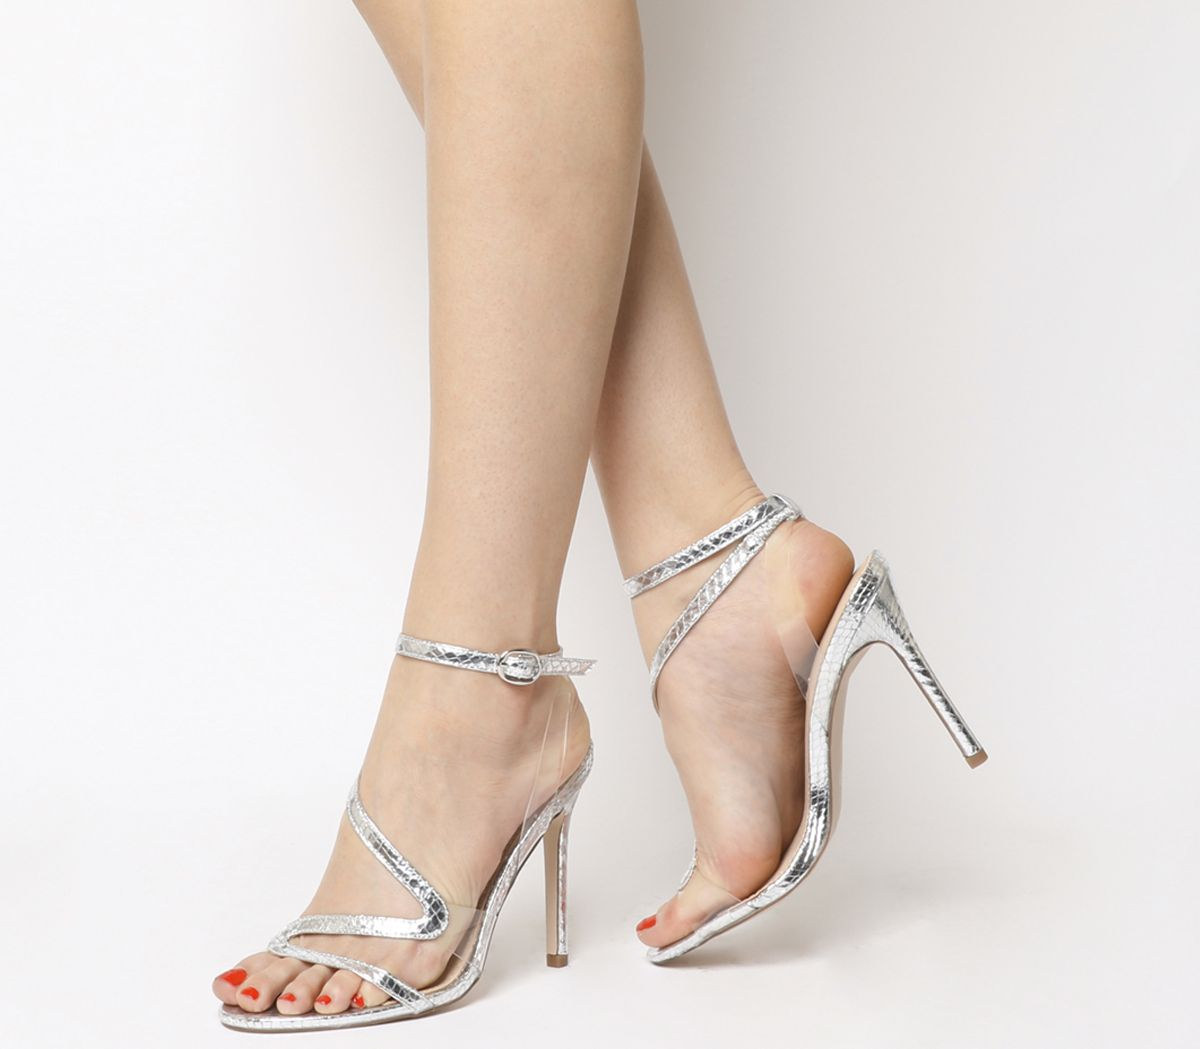 b5d598da753 Office Hotel Asymmetric Strappy Heels Silver Snake - High Heels